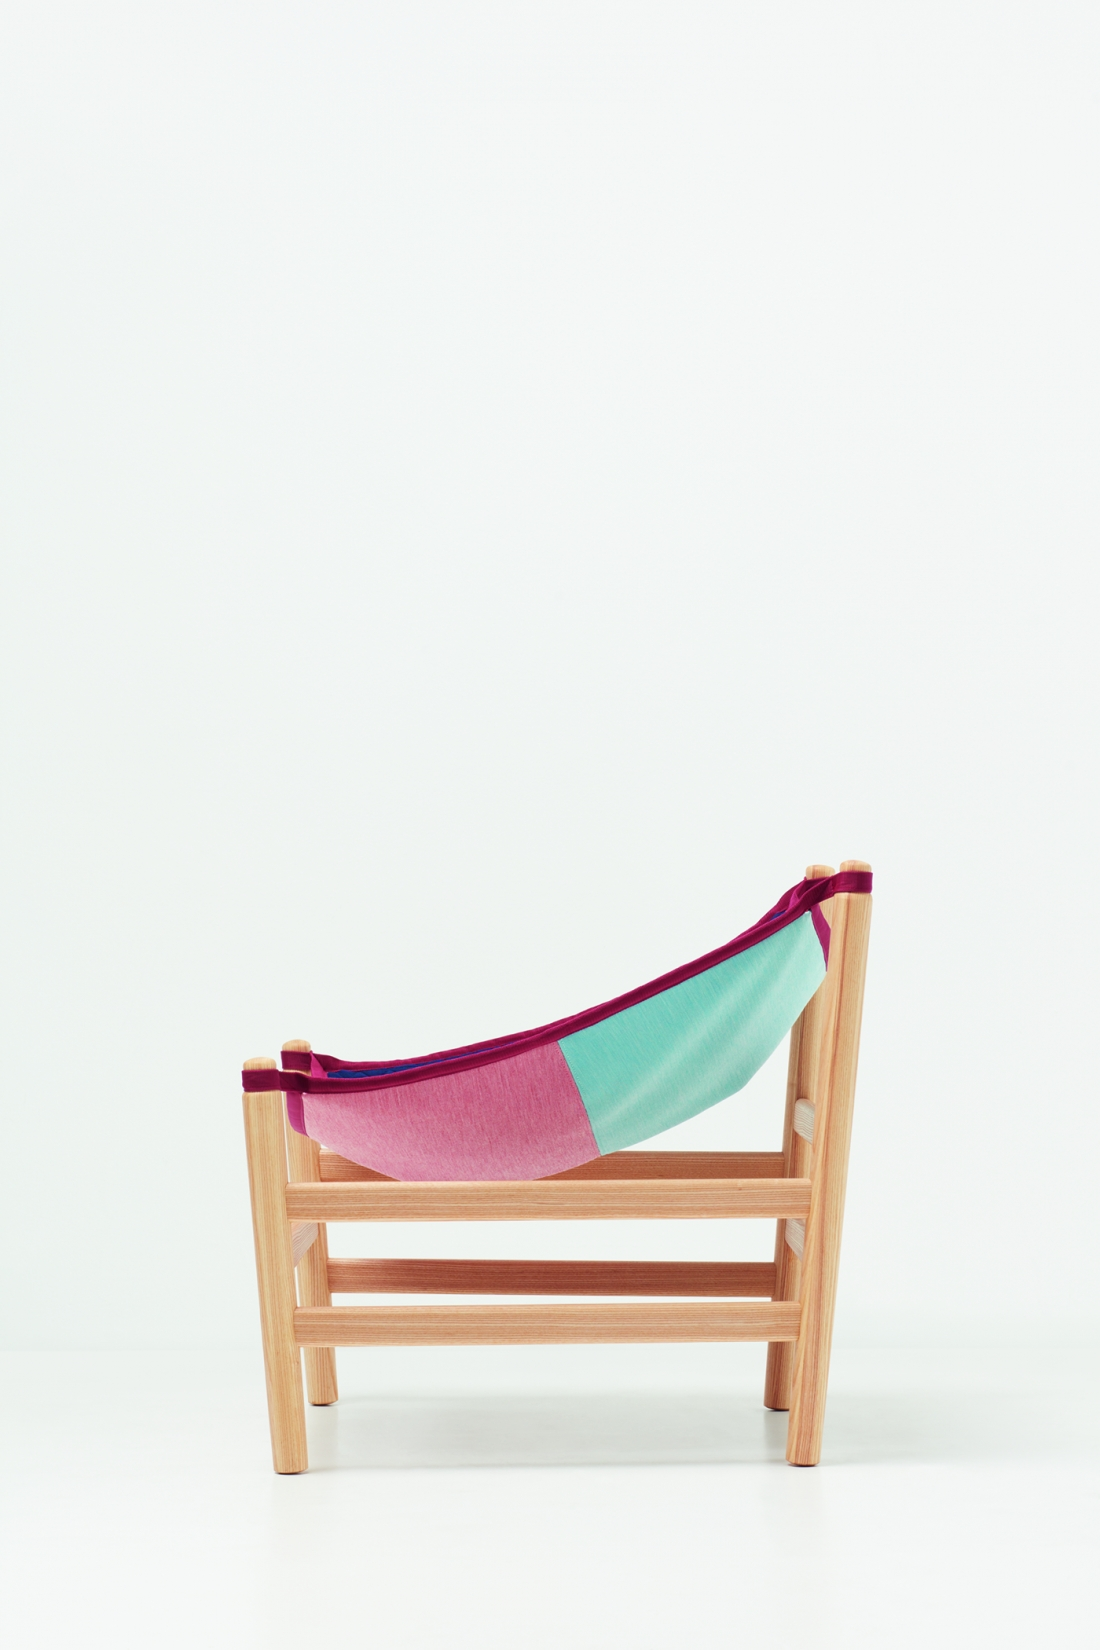 Knit Project - Wataru Kumano Hammock Chair 2020 Copyright Luke Evans